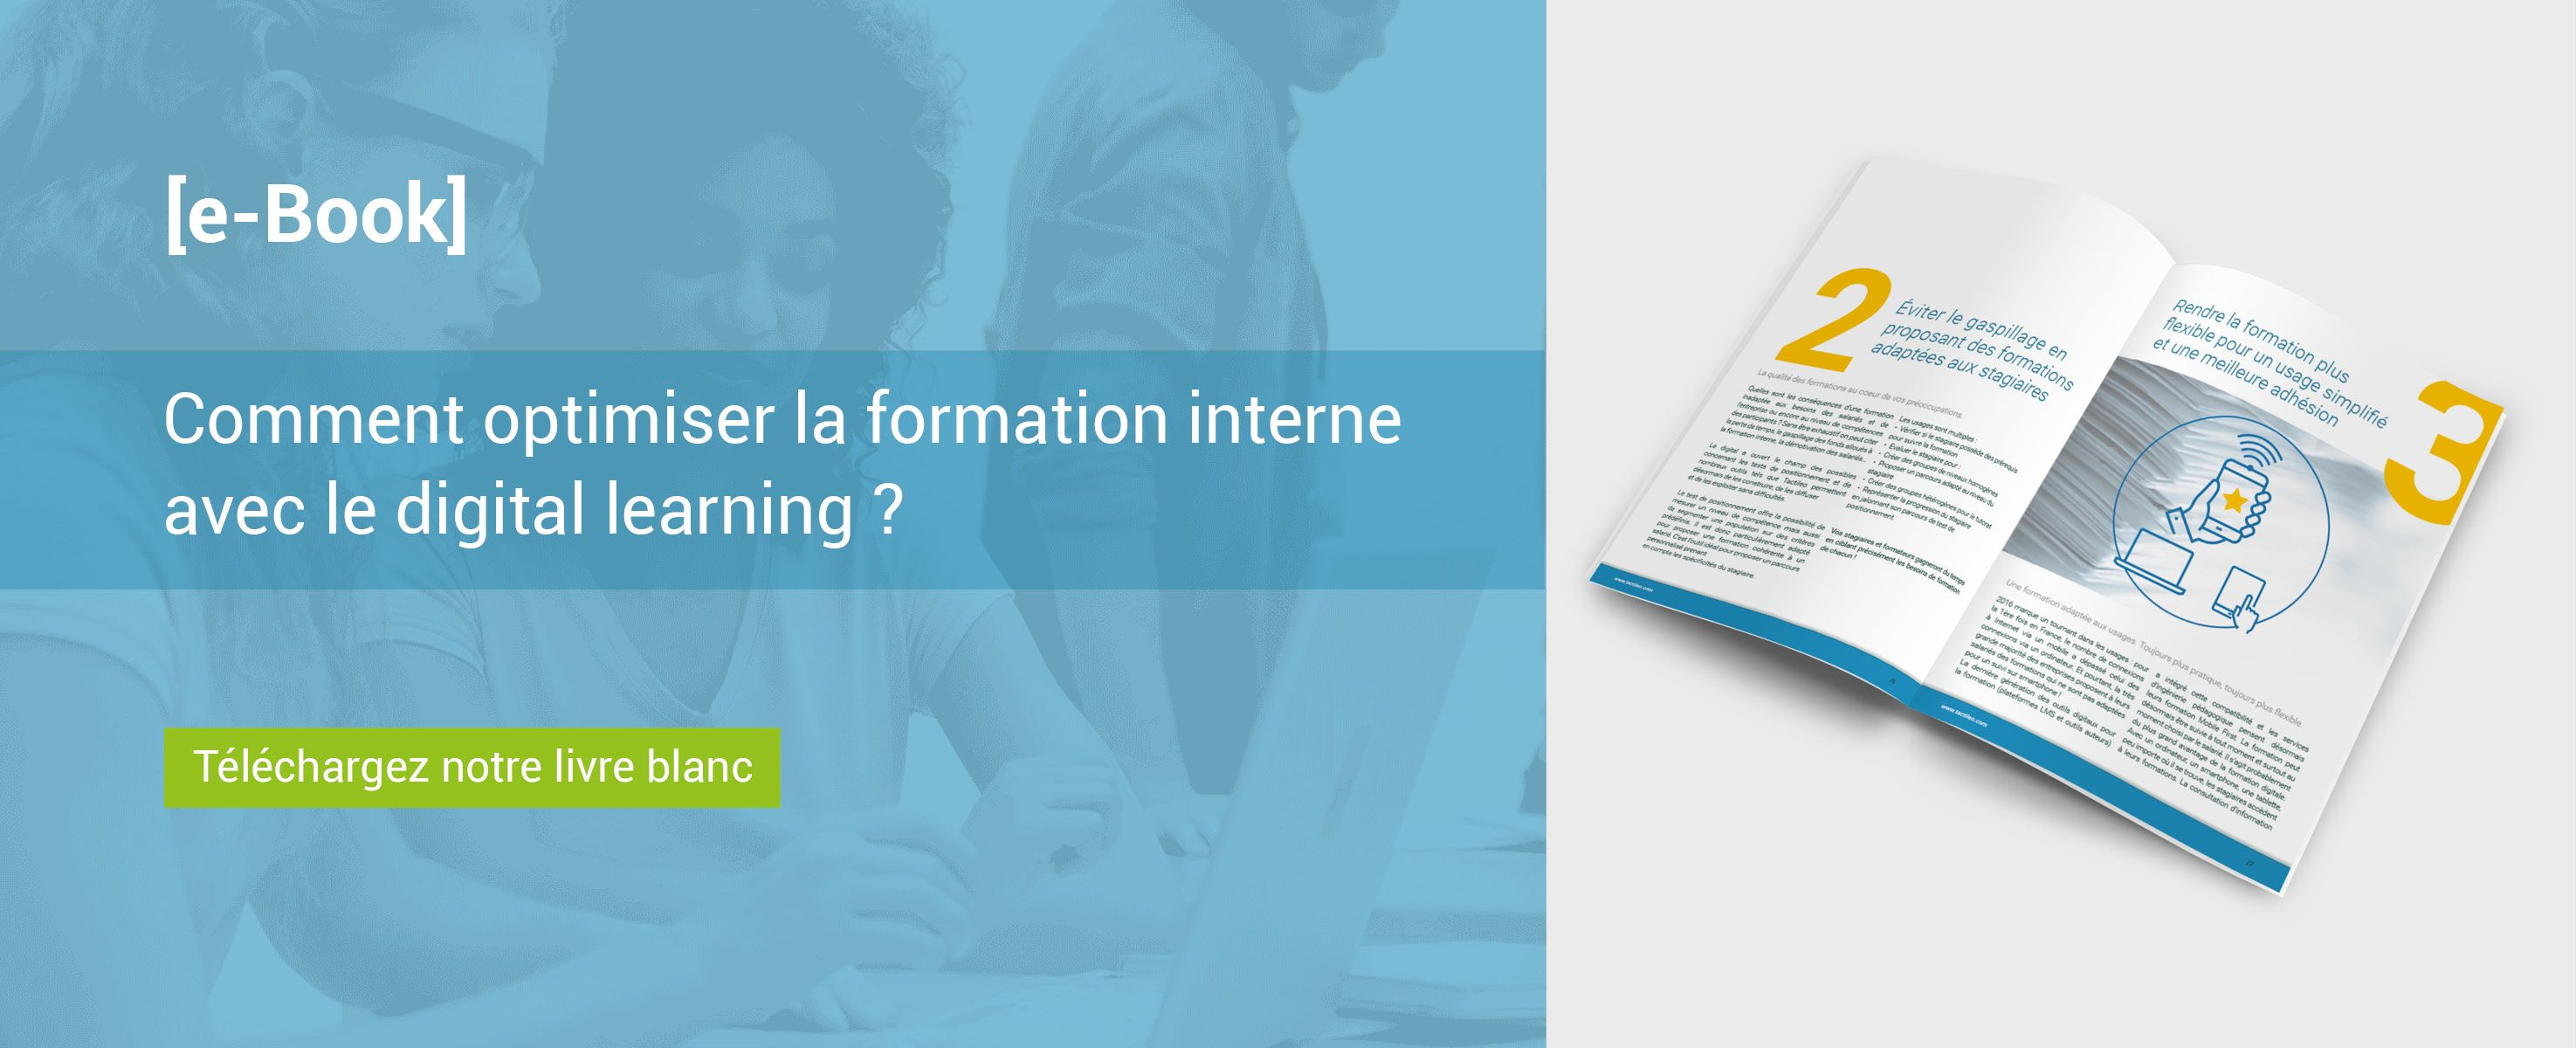 Webinaire5 SlideShow optimisation formation interne